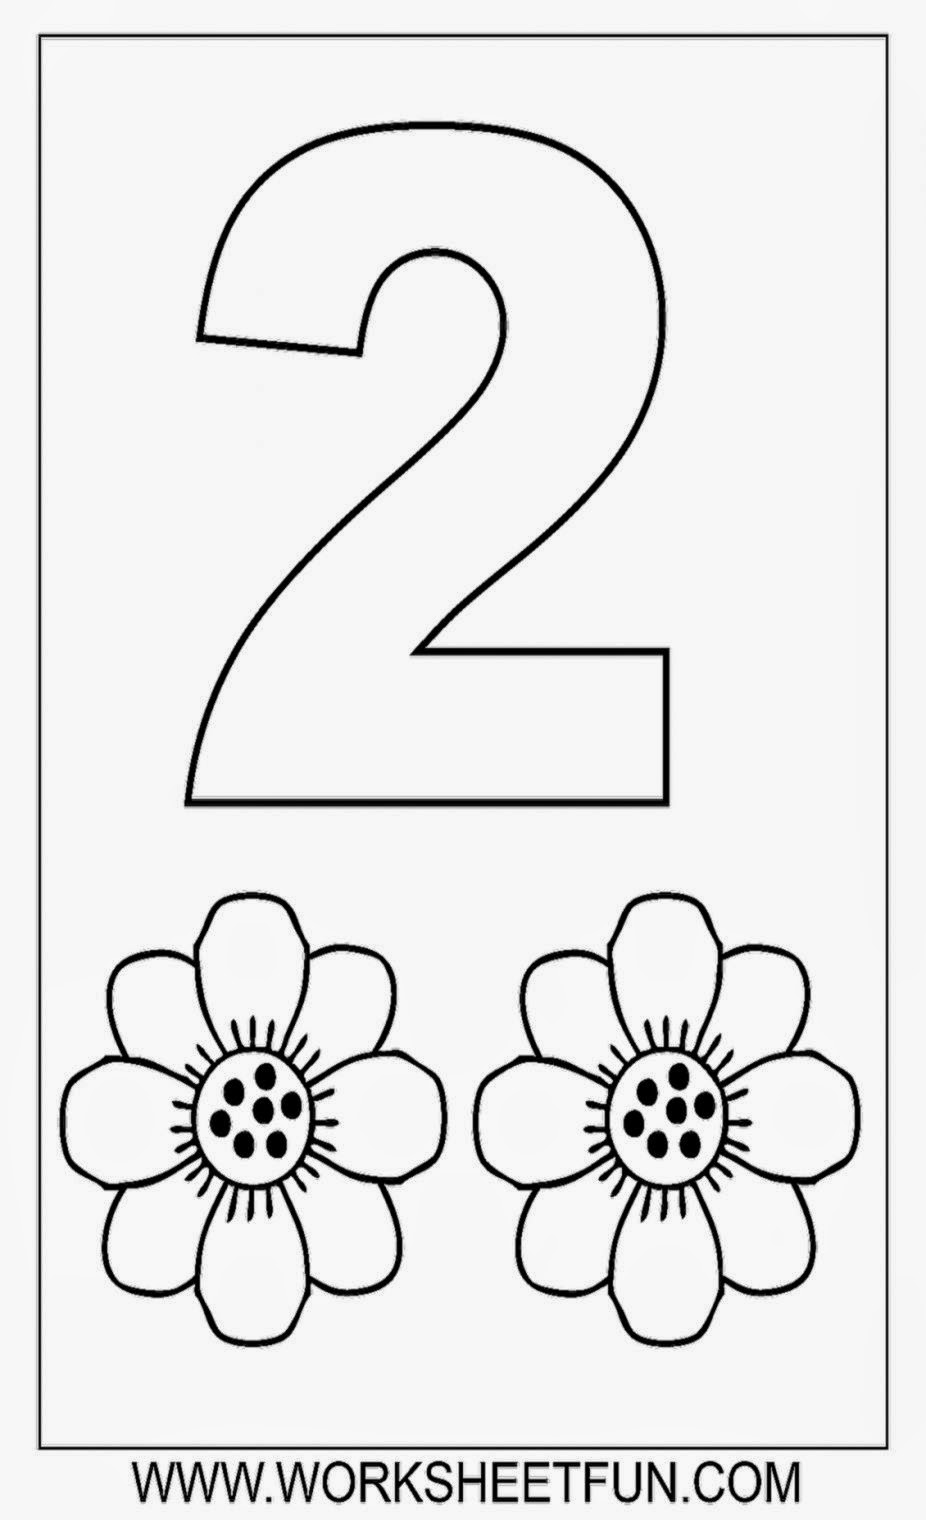 Printable Color By Number Sheets Free Coloring Sheet Coloring Pages Of Numbers